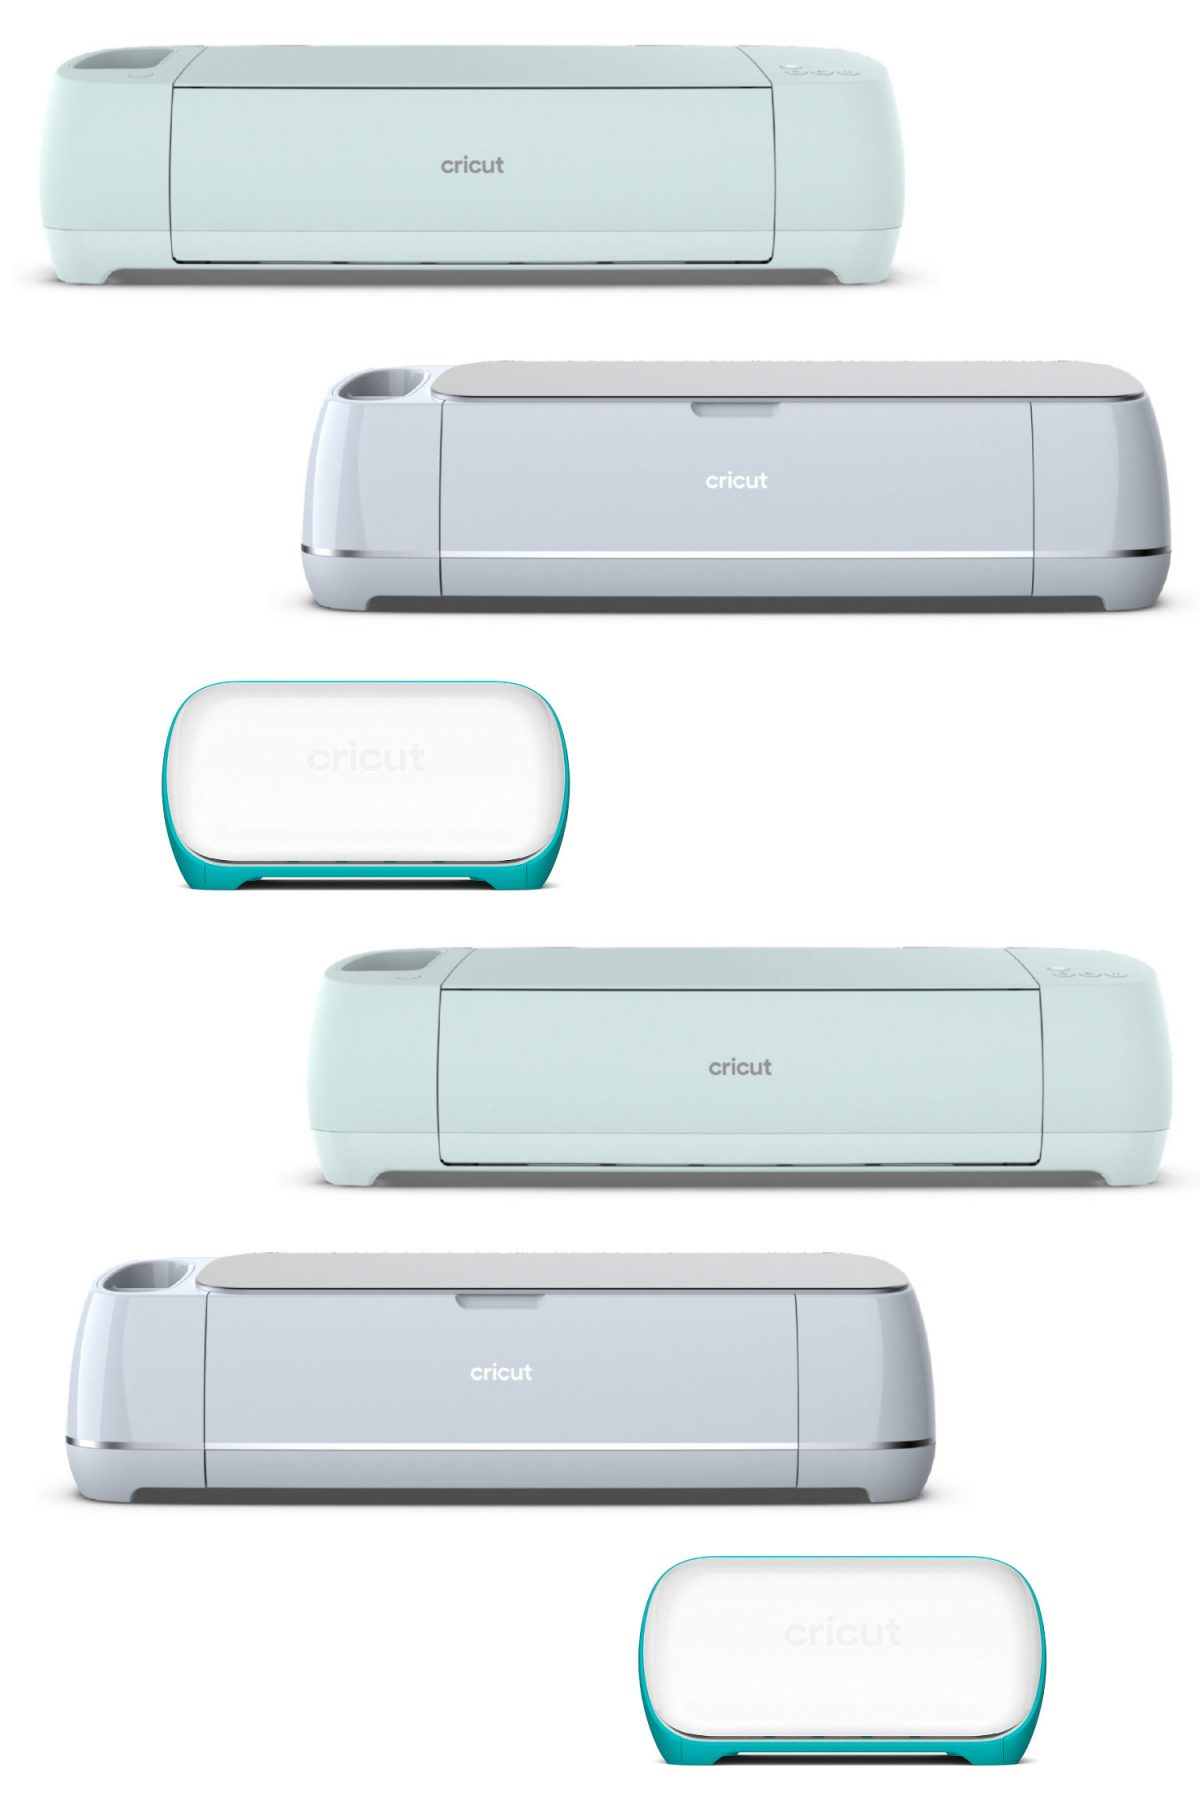 Collage of Cricut machines on white background